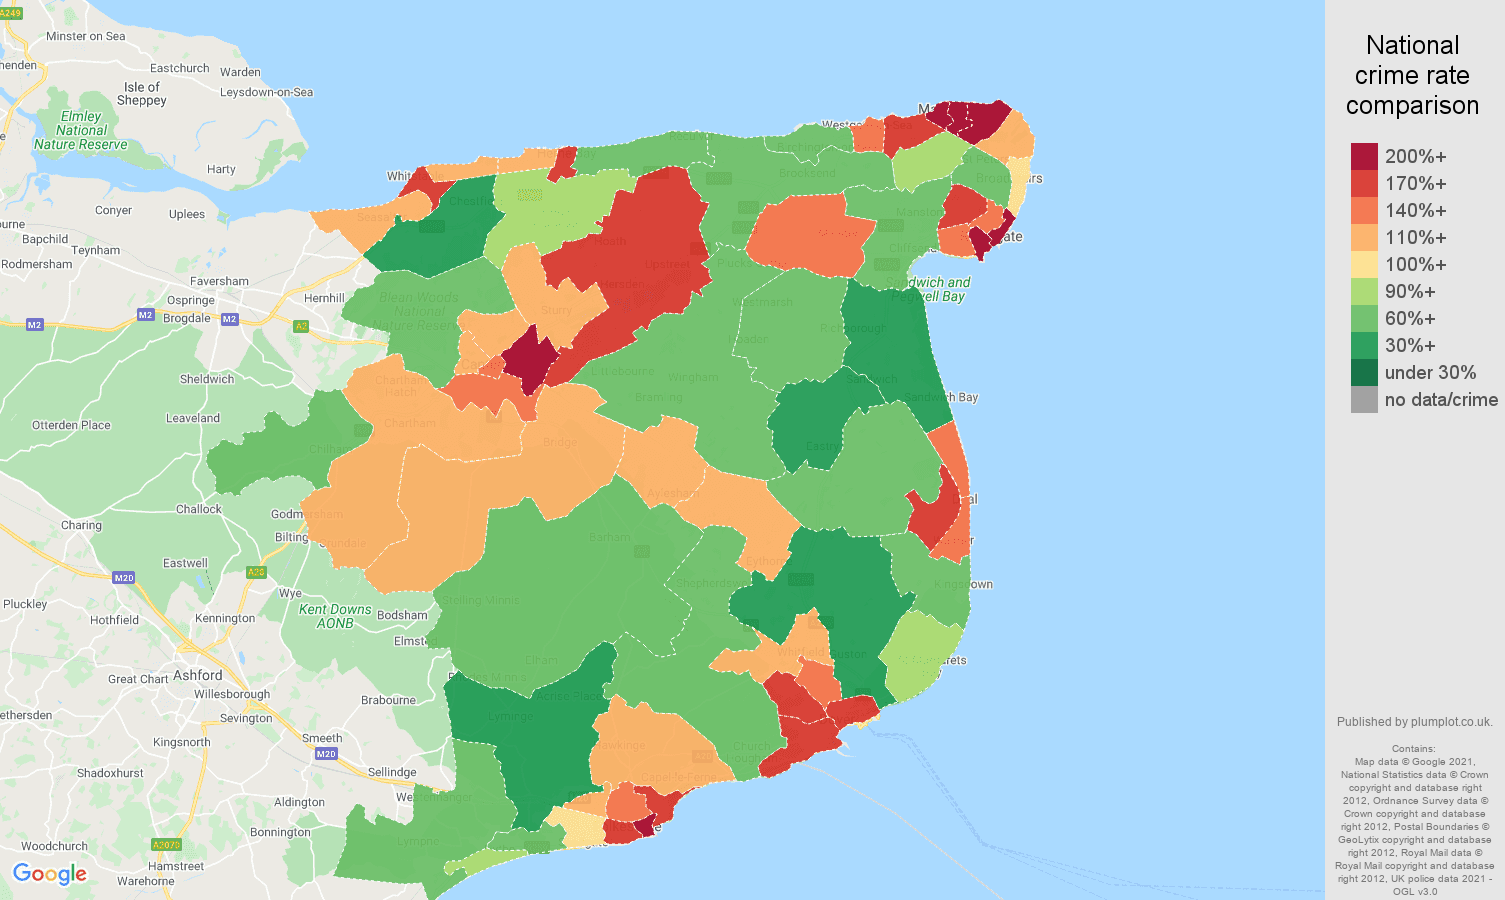 Canterbury criminal damage and arson crime rate comparison map